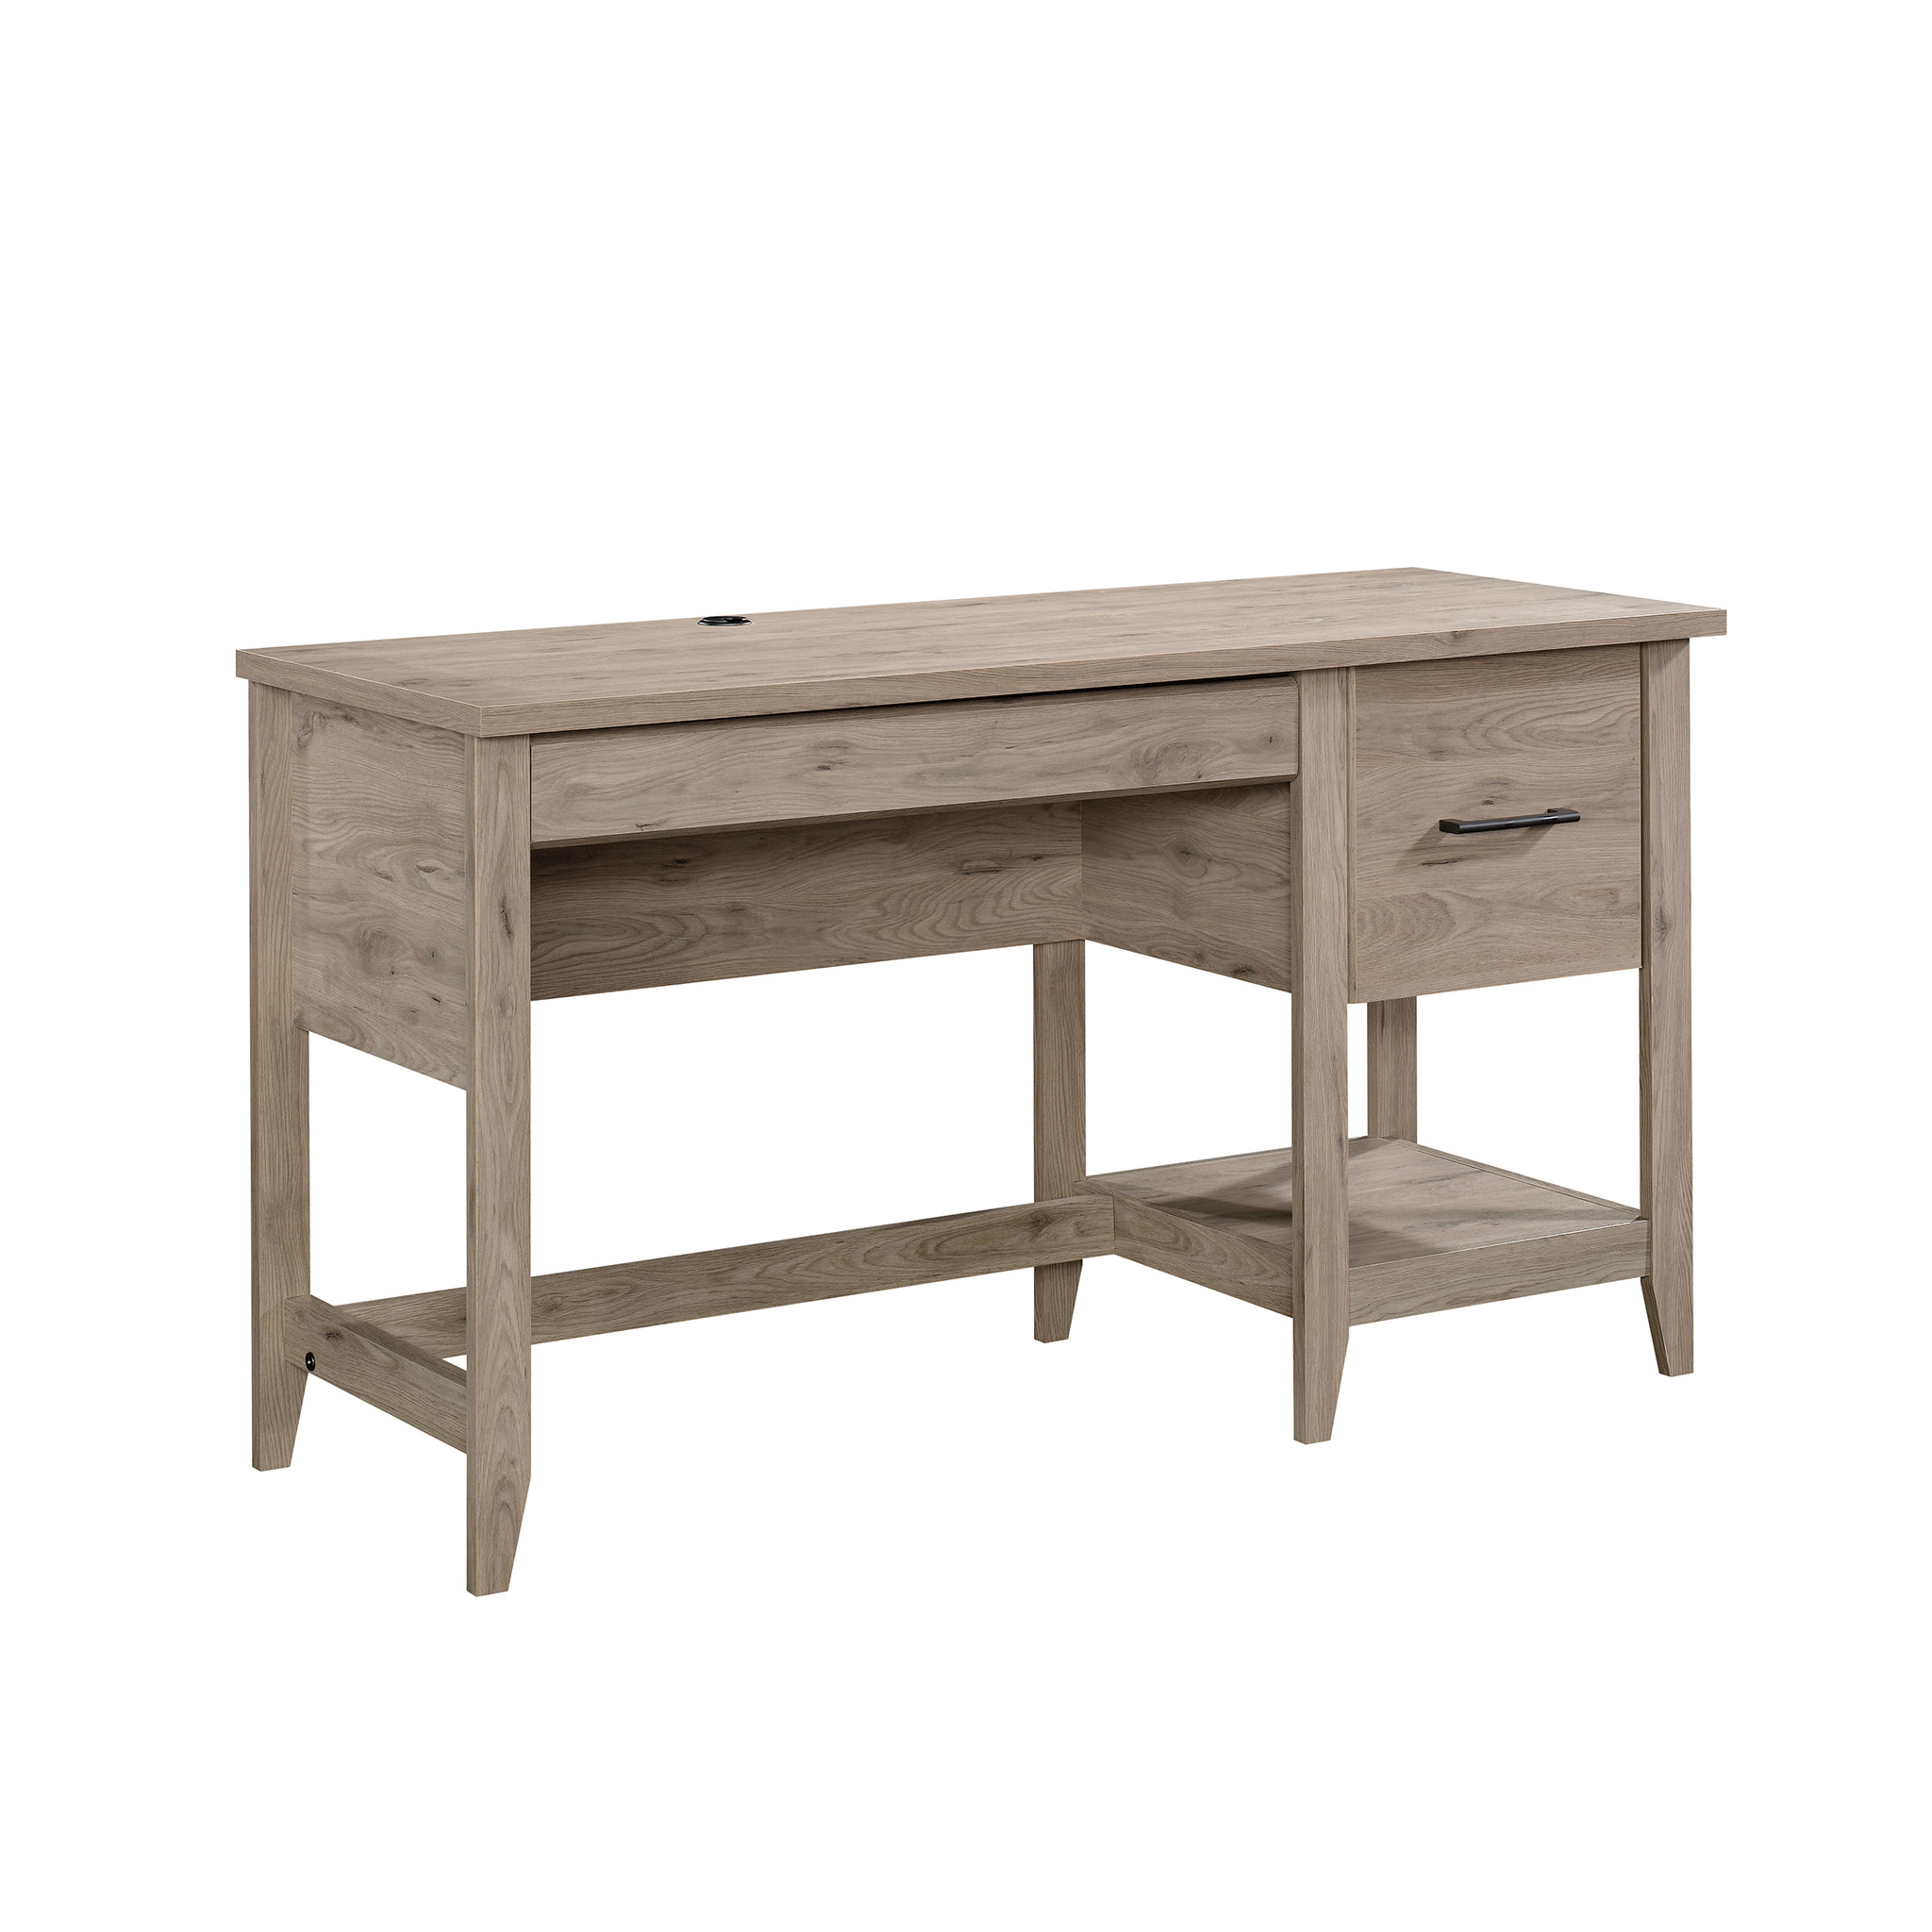 Sauder 425015 Summit Station Desk, Laurel Oak | eBay